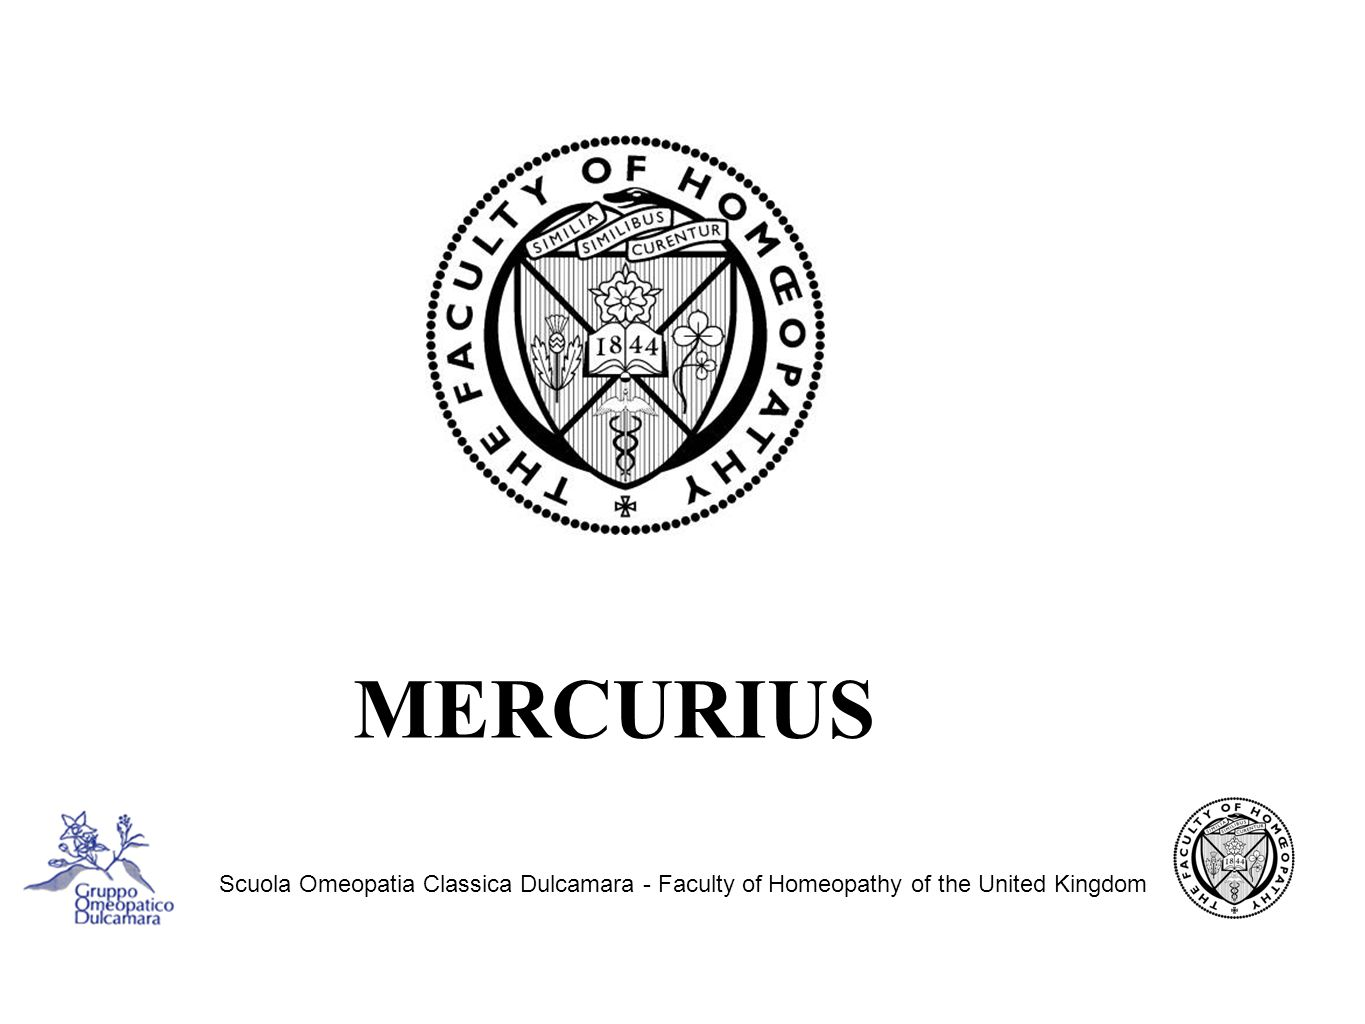 MERCURIUS Scuola Omeopatia Classica Dulcamara - Faculty of Homeopathy of the United Kingdom